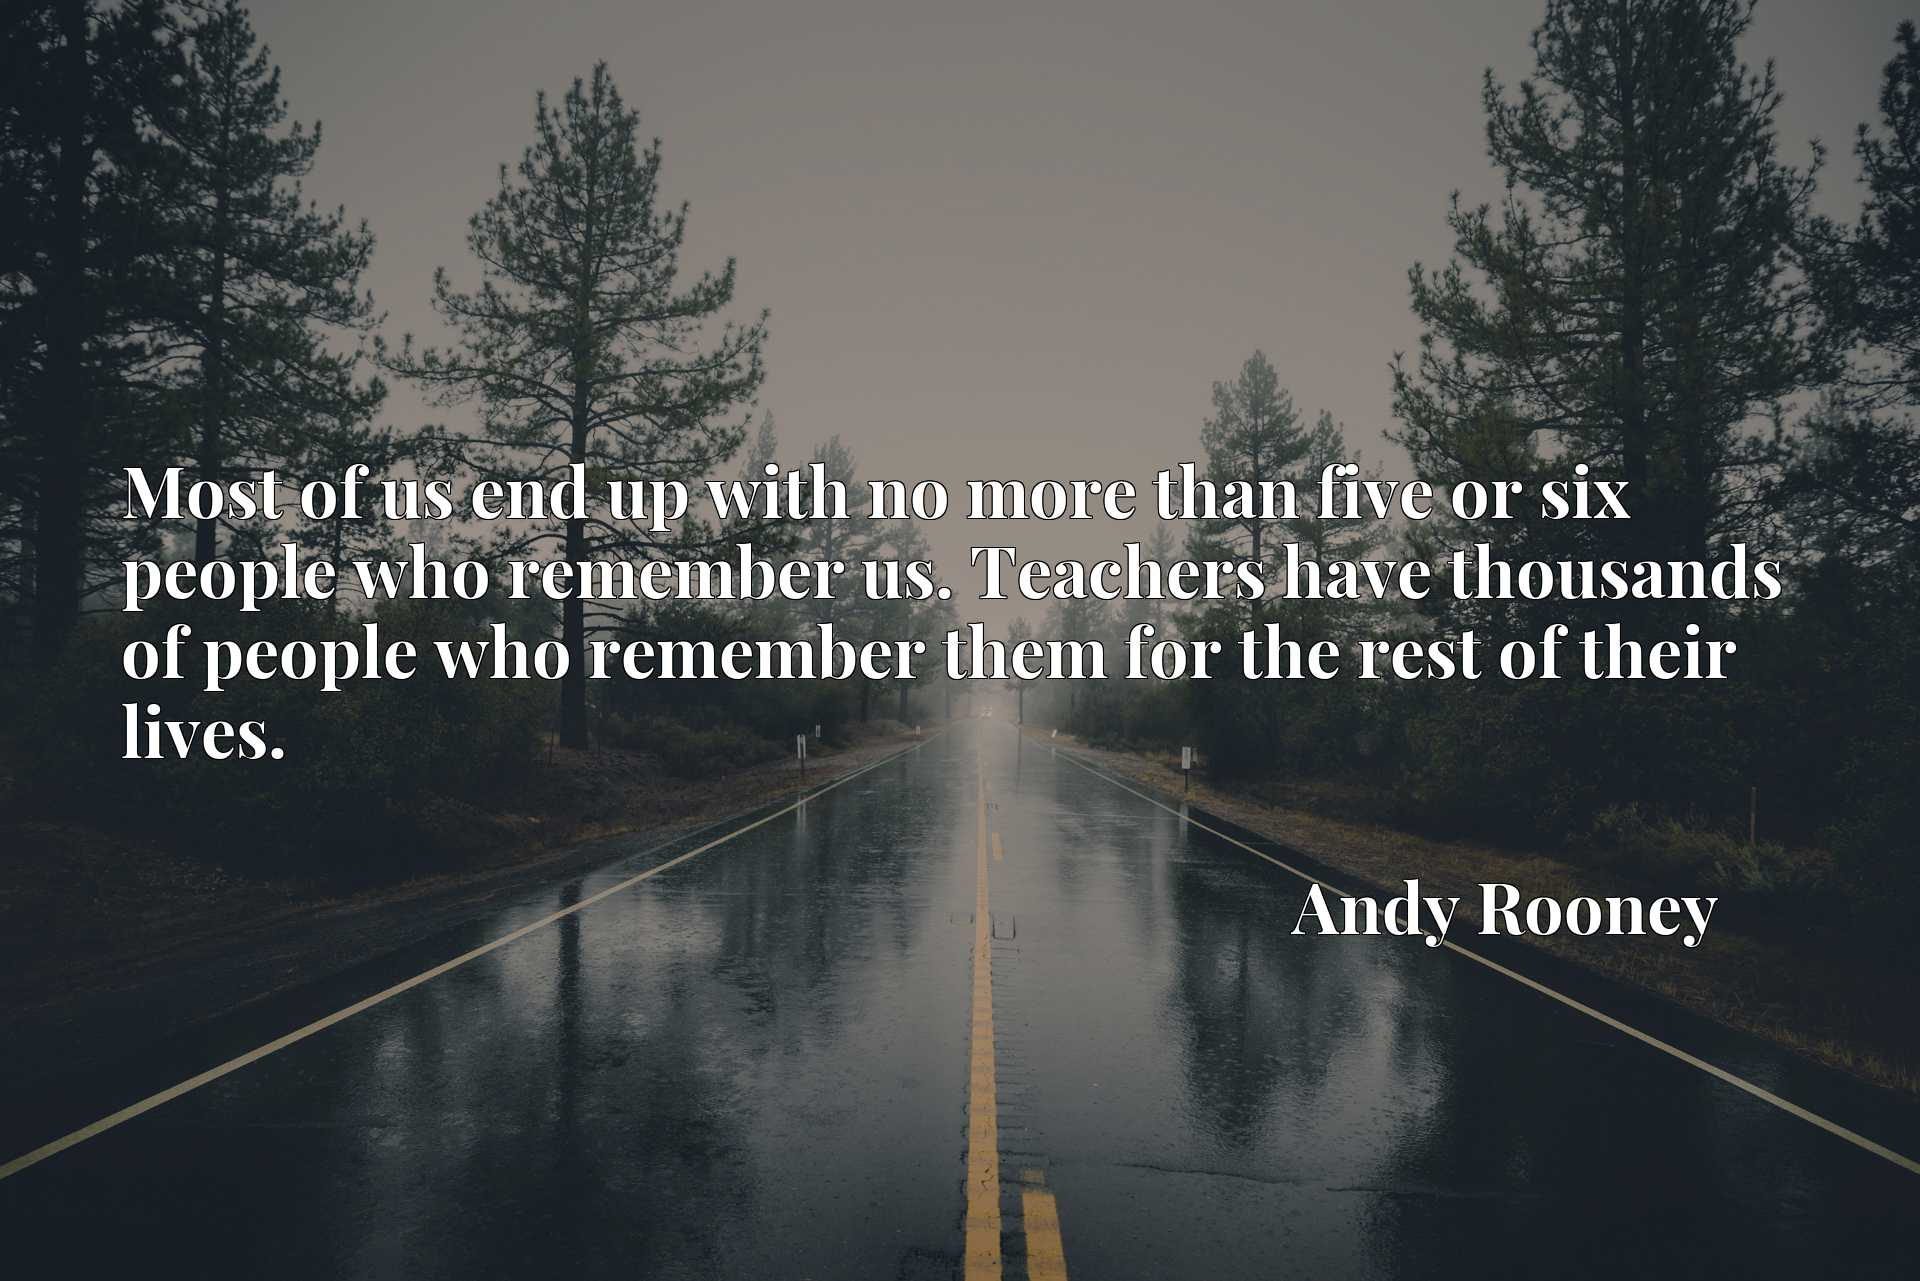 Quote Picture :Most of us end up with no more than five or six people who remember us. Teachers have thousands of people who remember them for the rest of their lives.